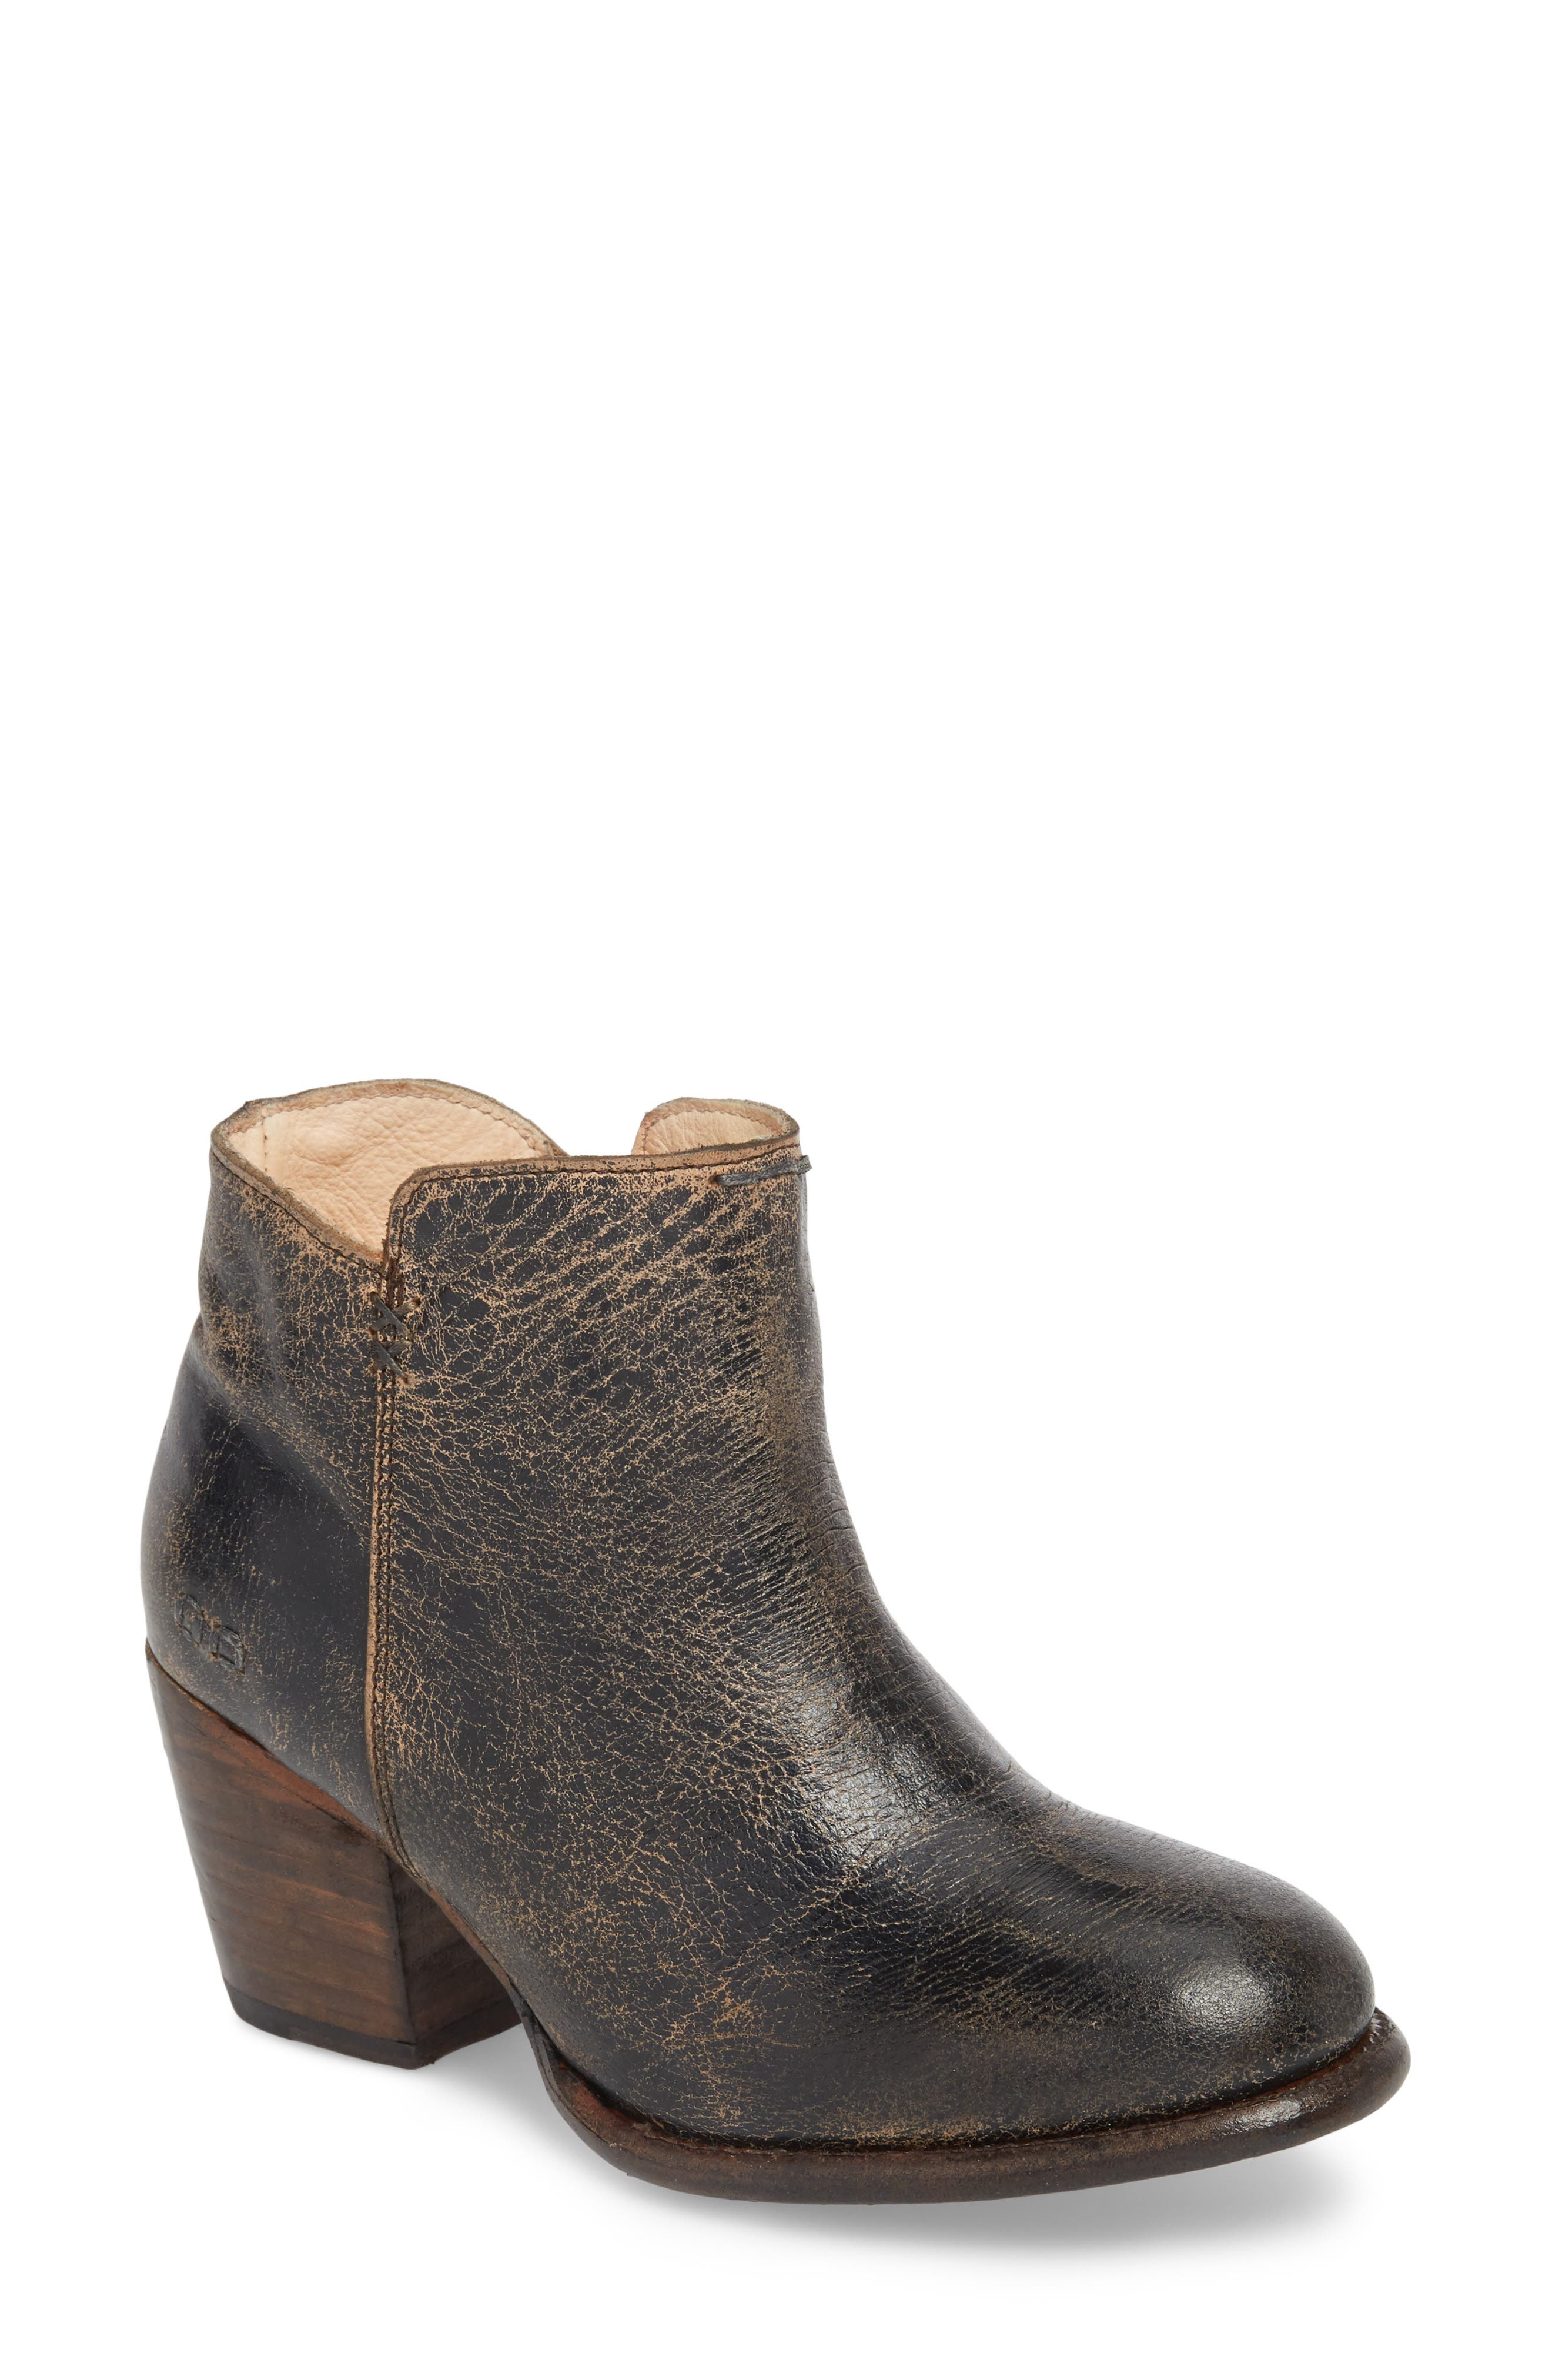 Yell Bootie,                             Main thumbnail 1, color,                             BLACK LUX